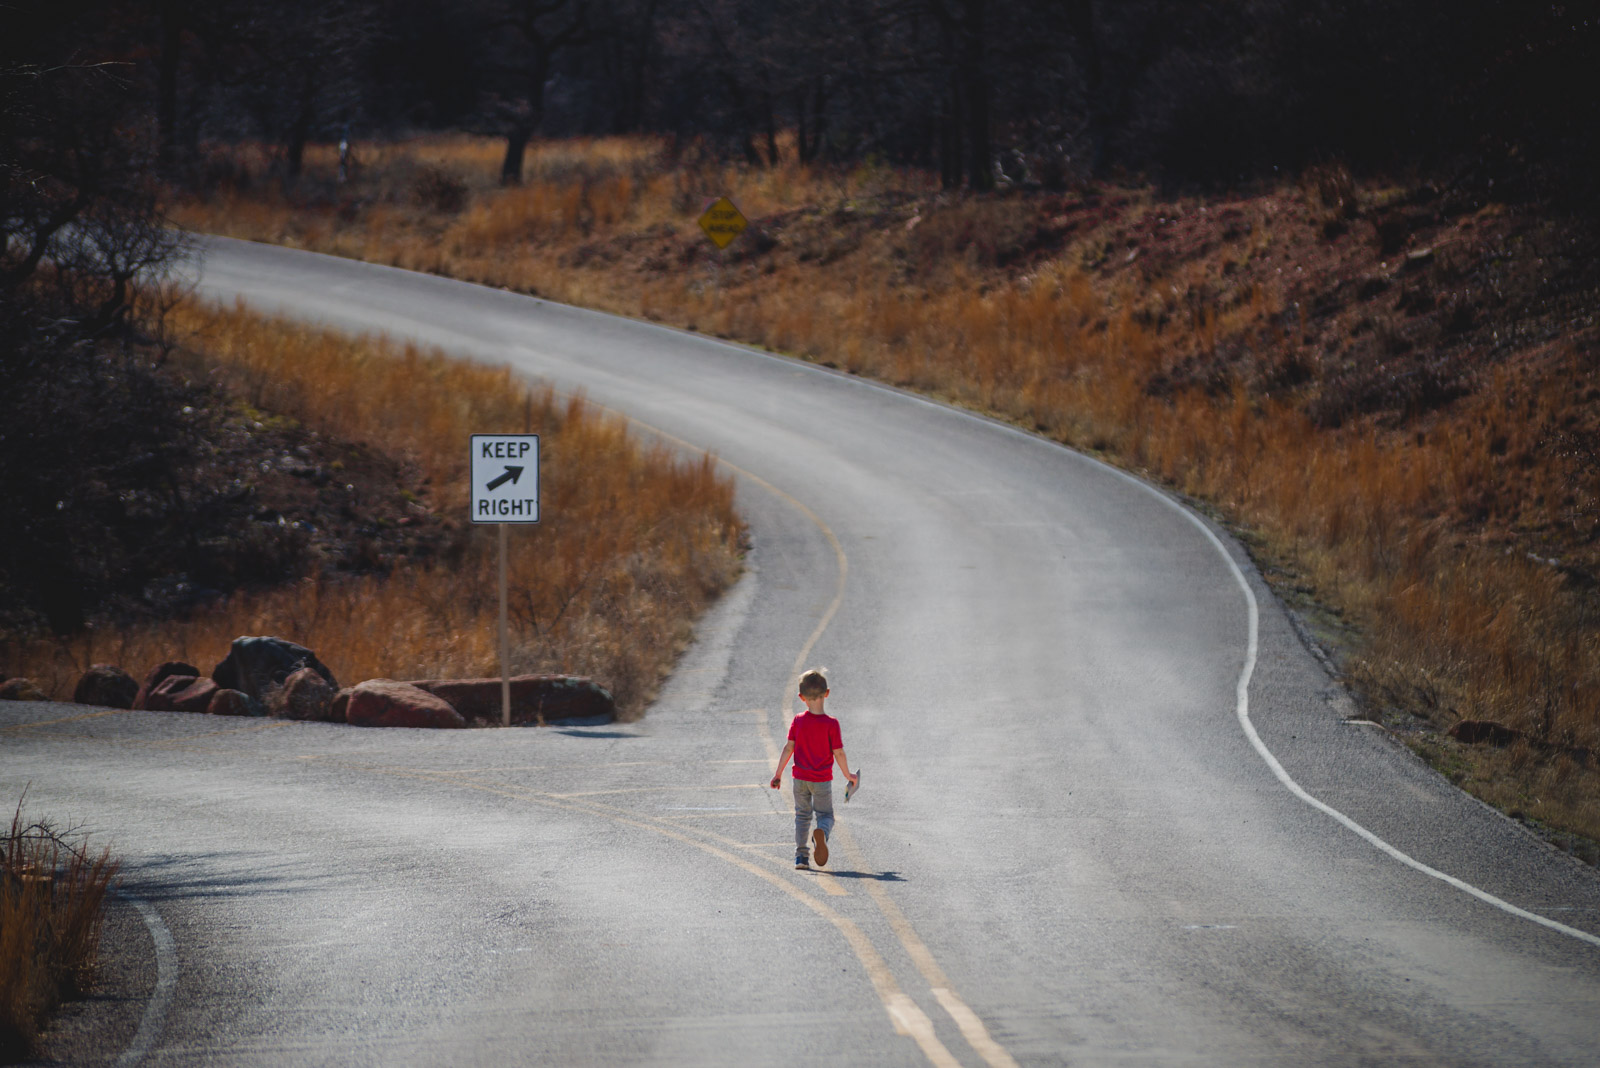 A boy meets a fork in the road, taking a break from photography